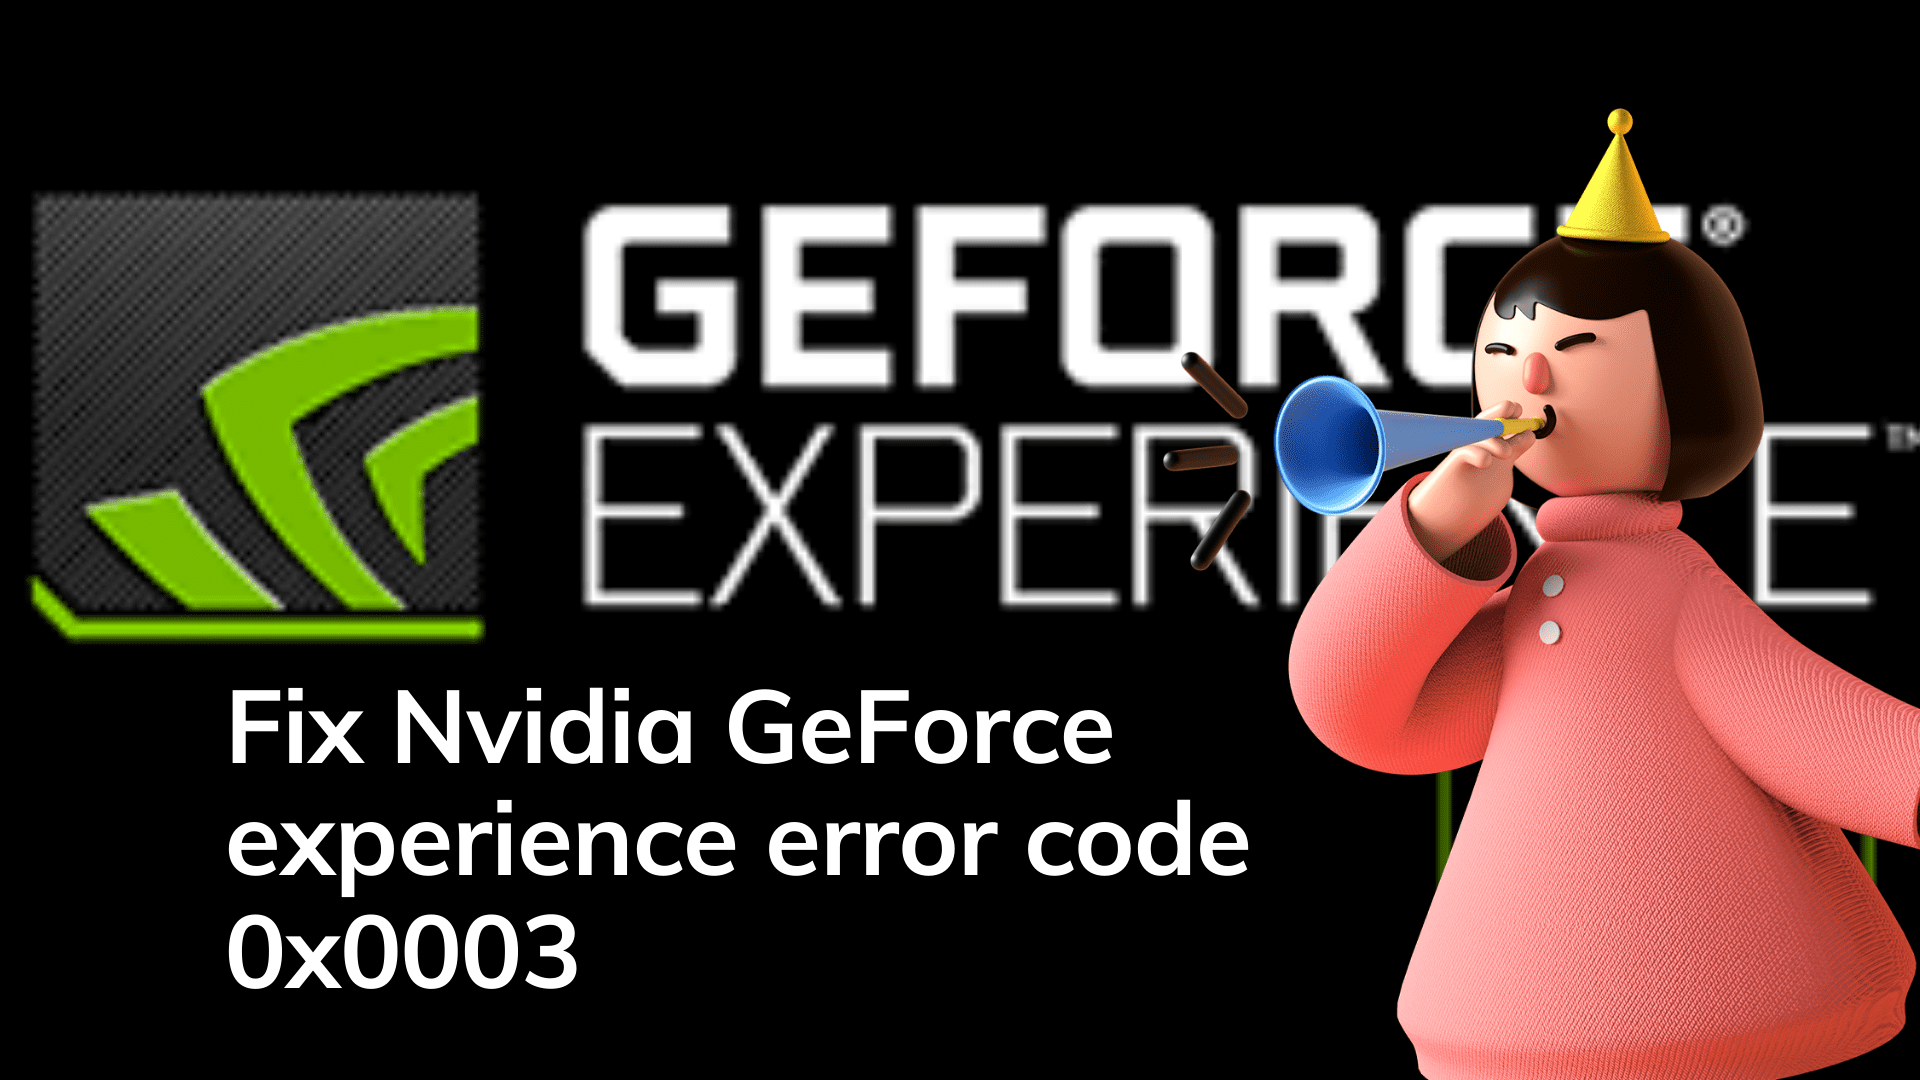 Fix Nvidia GeForce experience error code 0x0003